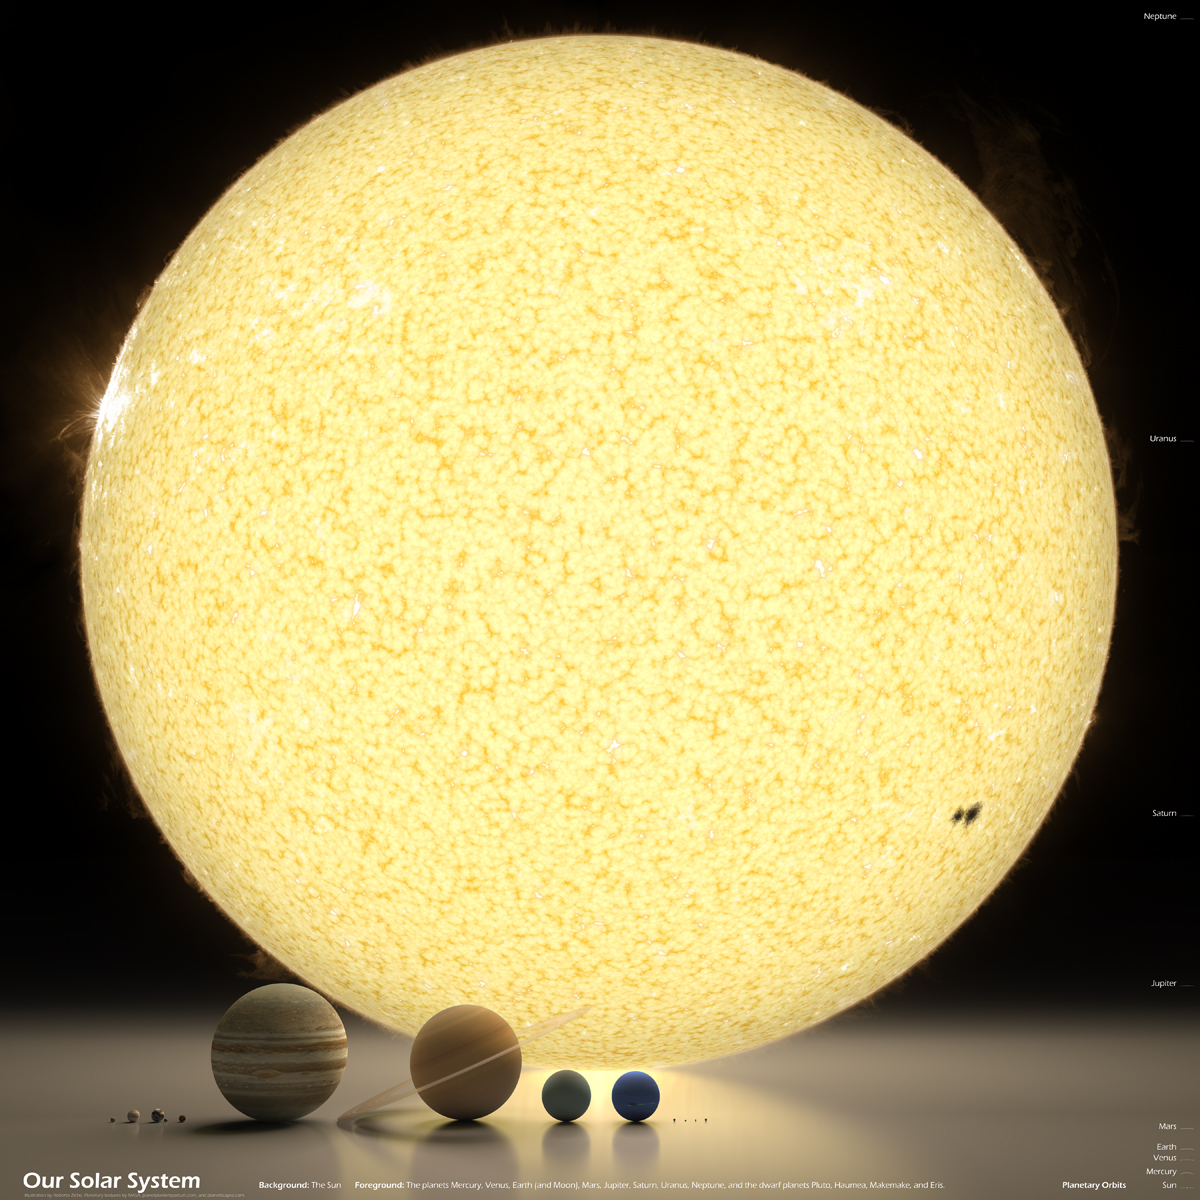 our solar system in perspective